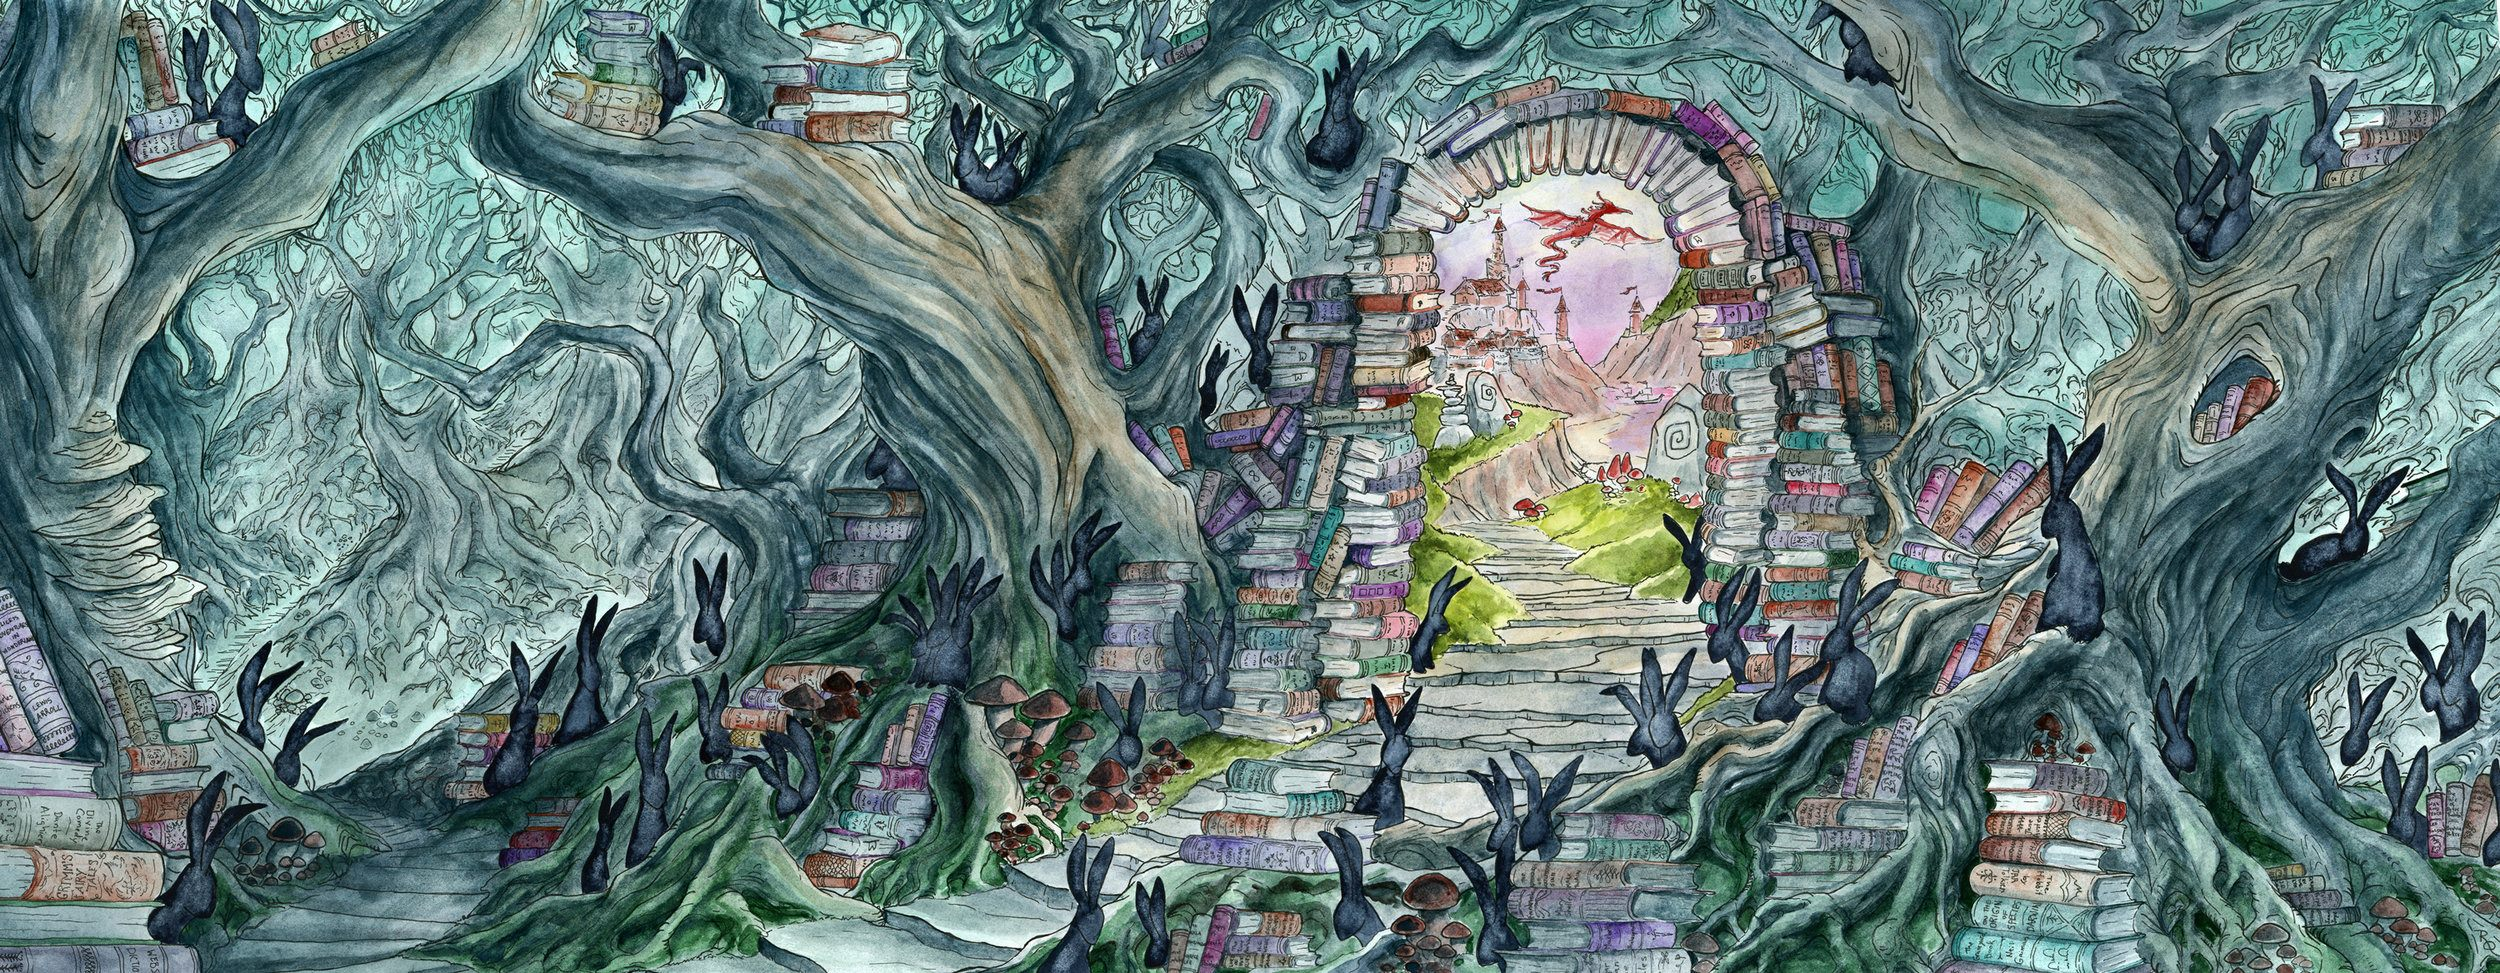 "Rachel Quinlan - ""Portal"" - Promotional image for the Detroit Festival of Books, June 2018"